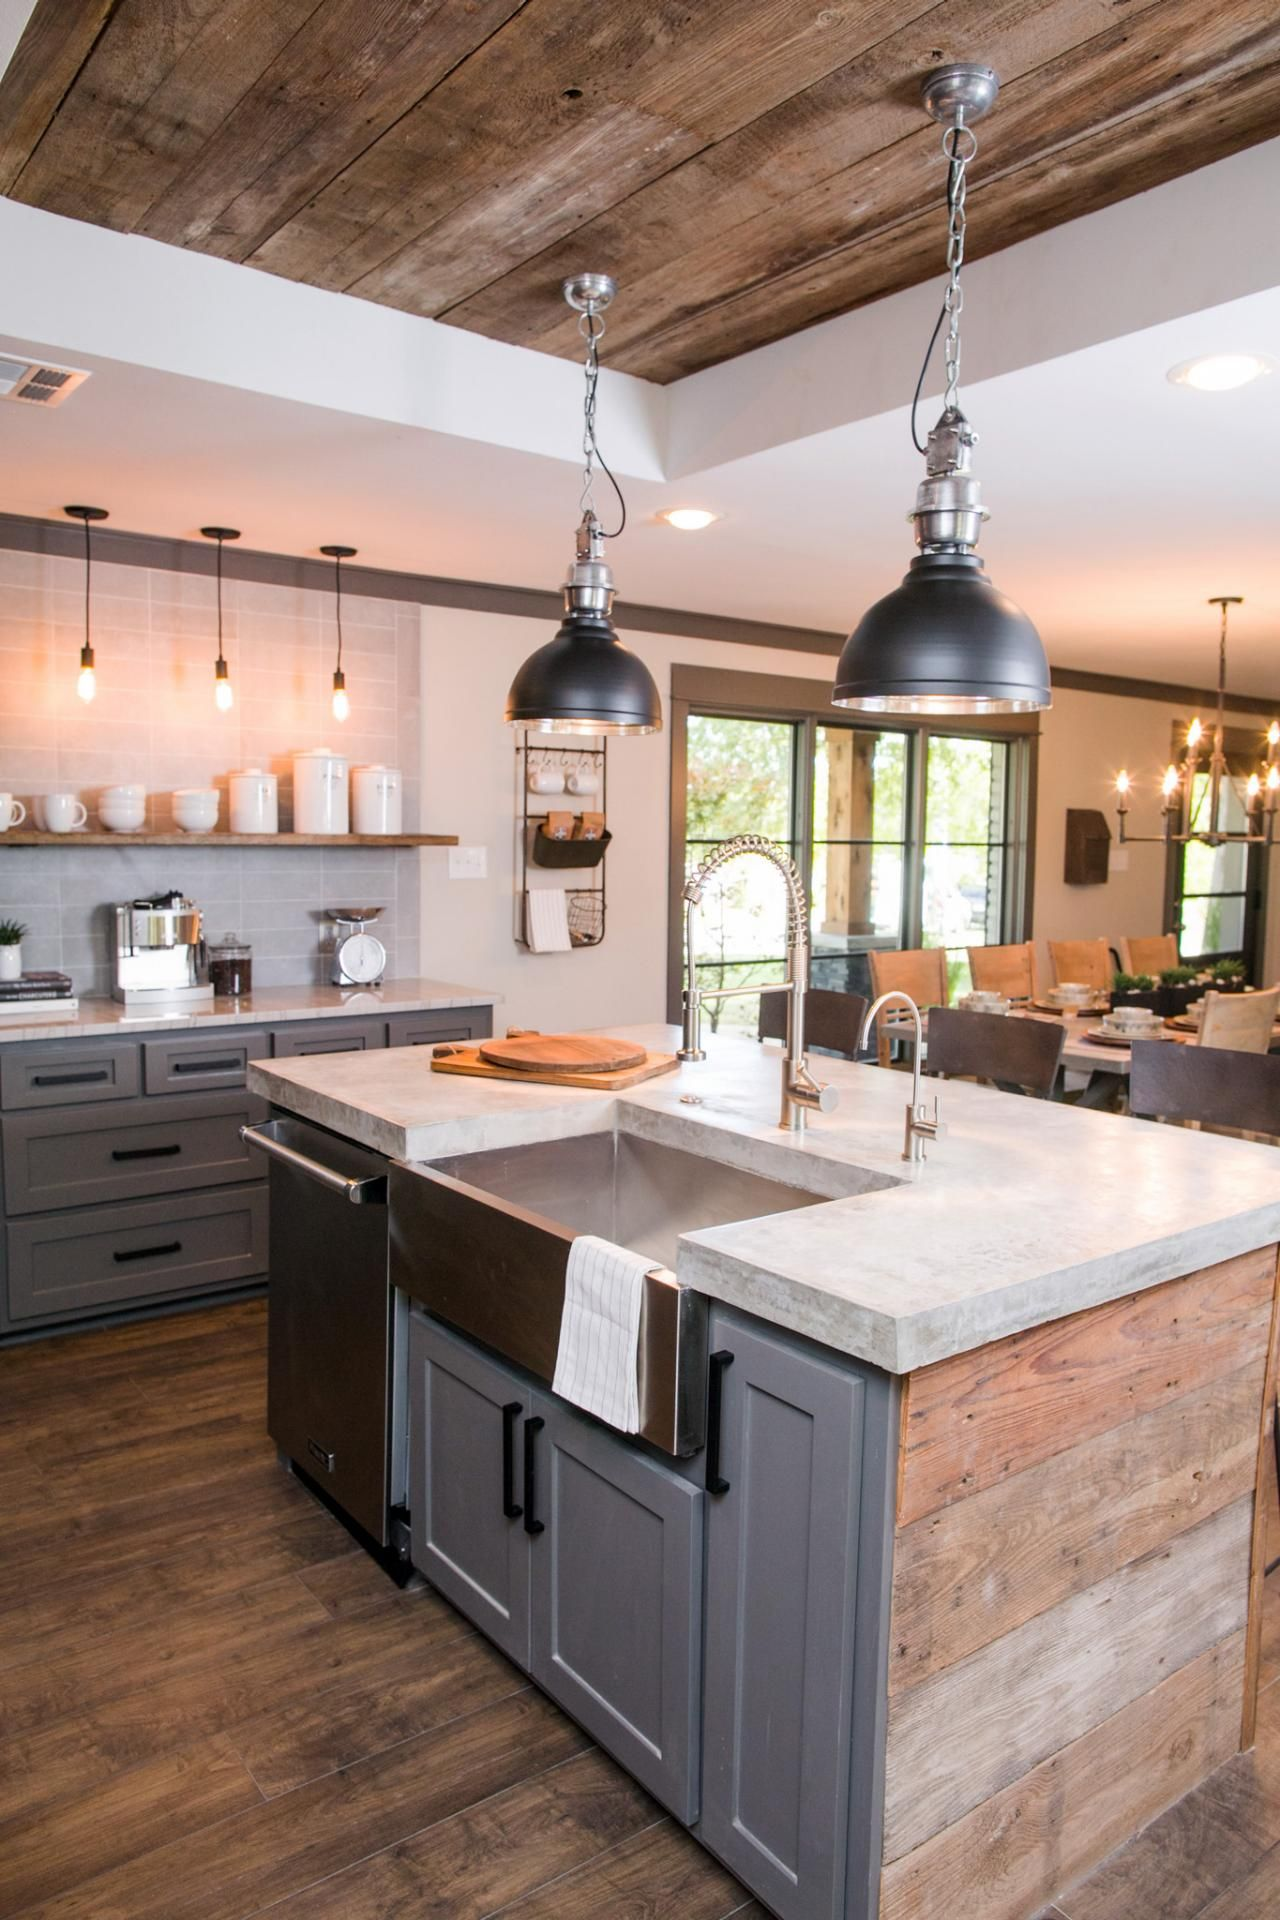 Fixer upper kitchen decor ideas - 6 Style Secrets From Hgtv S Fixer Upper Husband And Wife Team Chip And Joanna Gaines Invite Us Into Their Latest Project A 100 Year Old Texas Fa